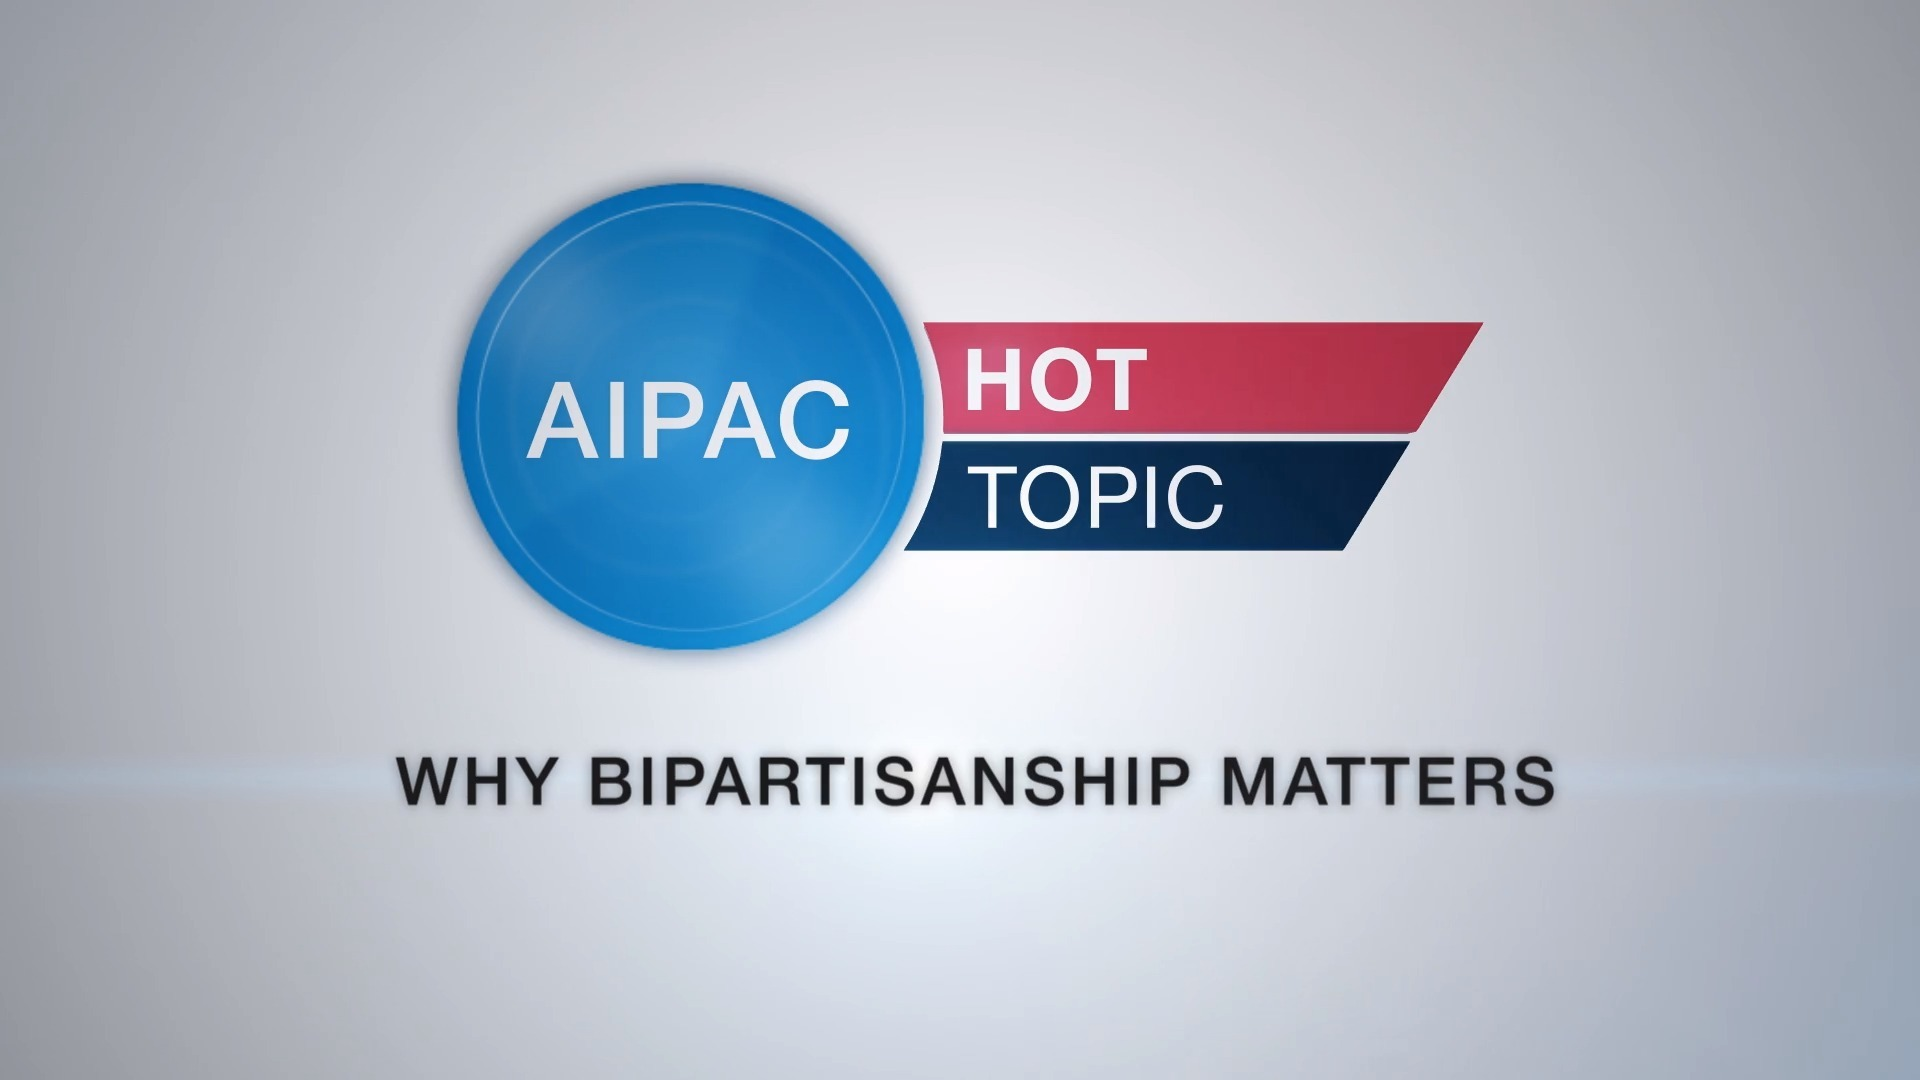 Hot Topic - Why Bipartisanship Matters